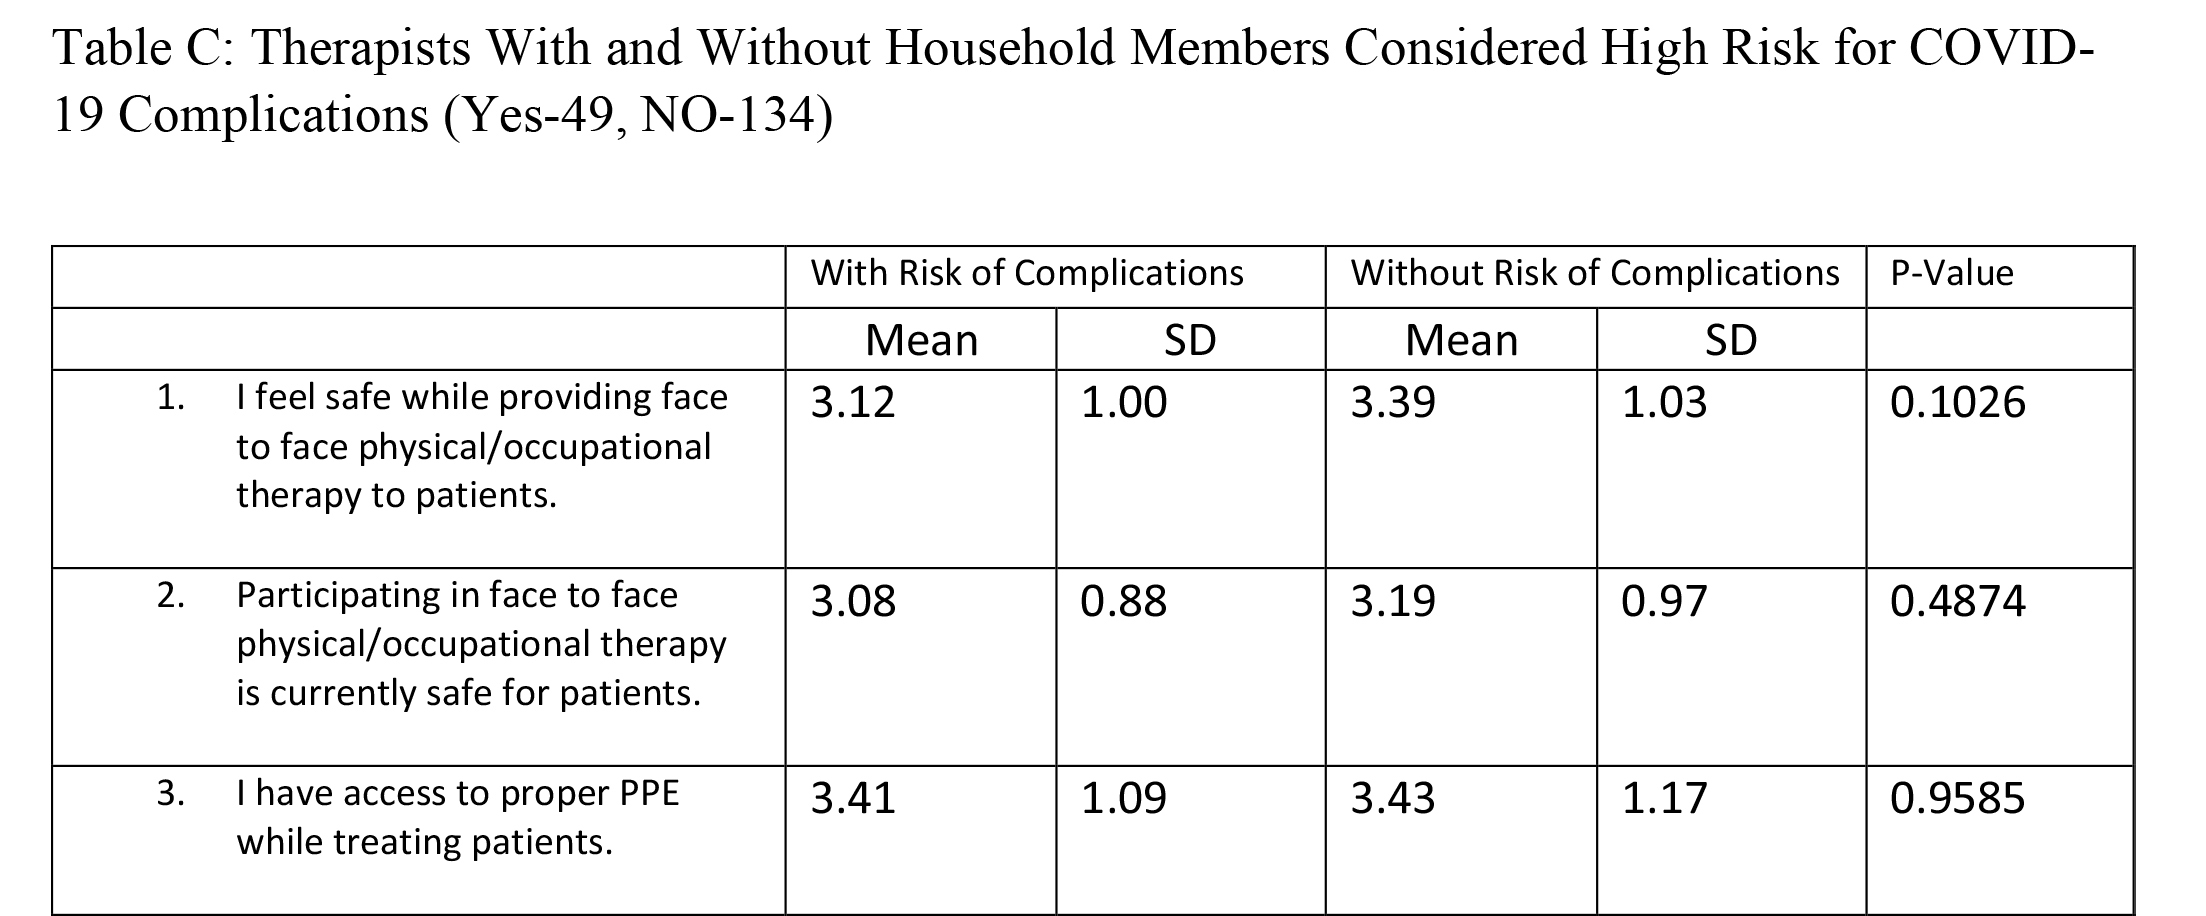 Therapists With and Without Household Members Considered High Risk for COVID-19 Complications (Yes-49, NO-134)